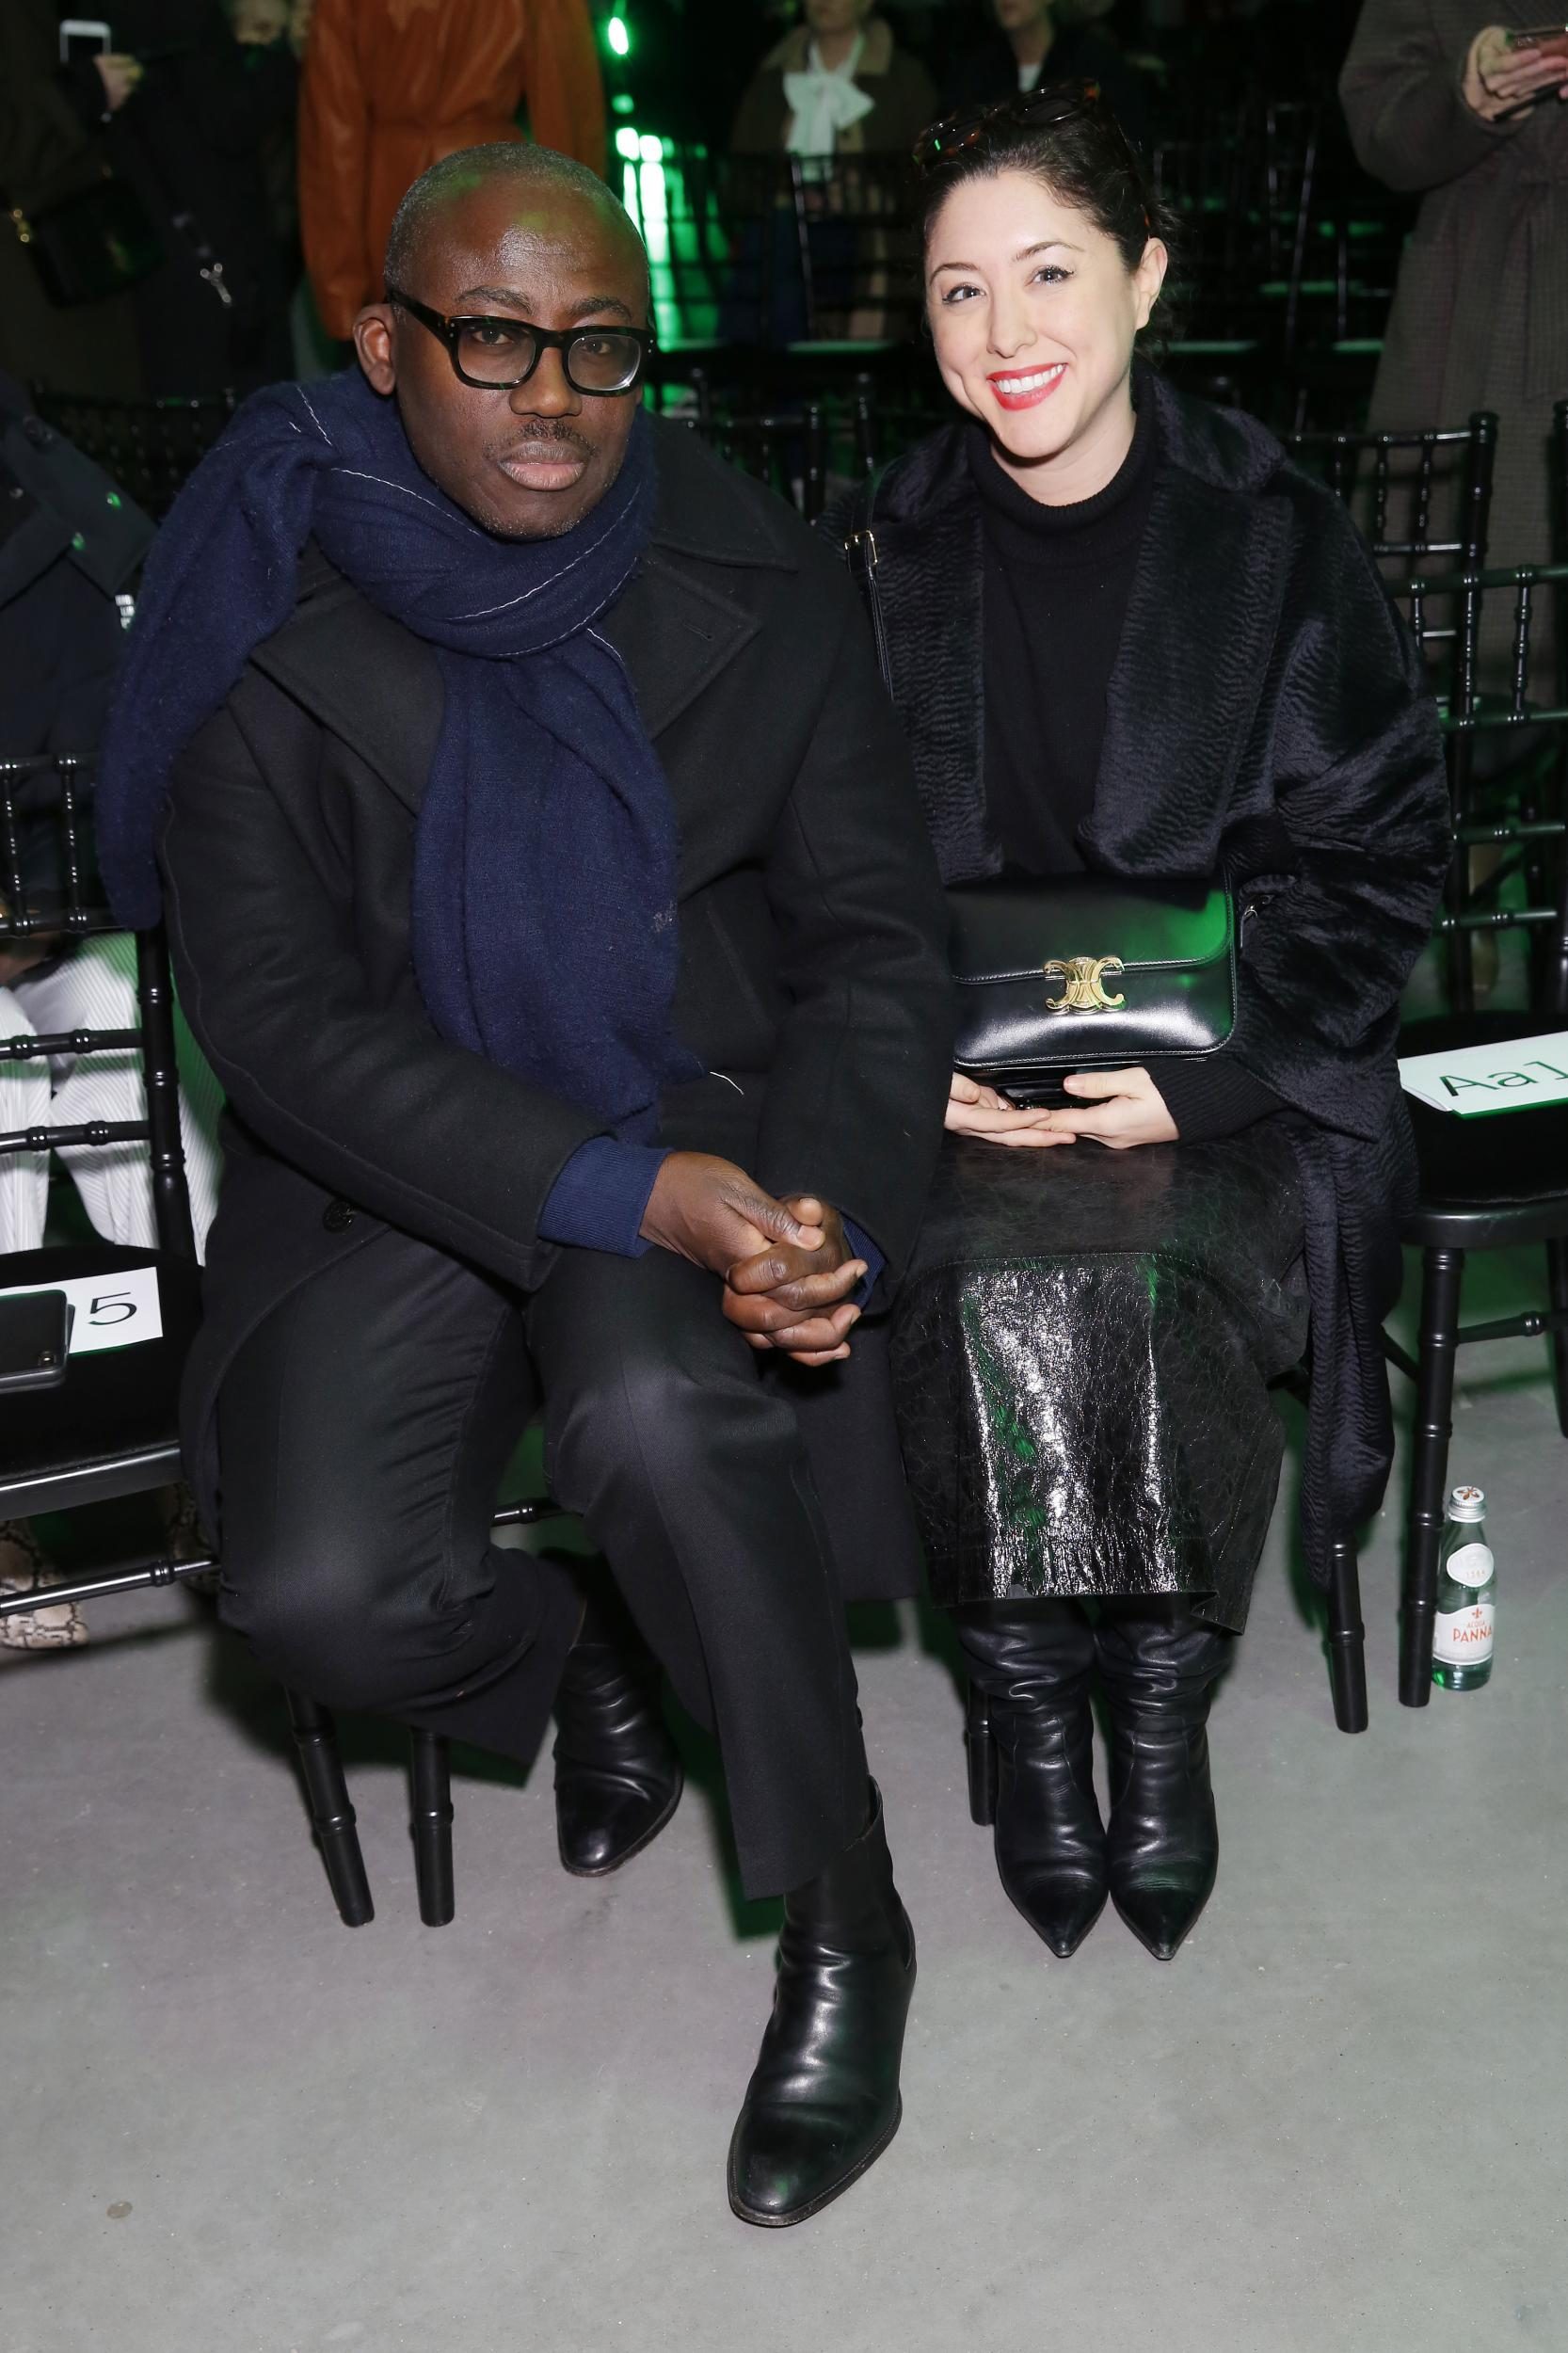 Edward Enninful and Dena Giannini